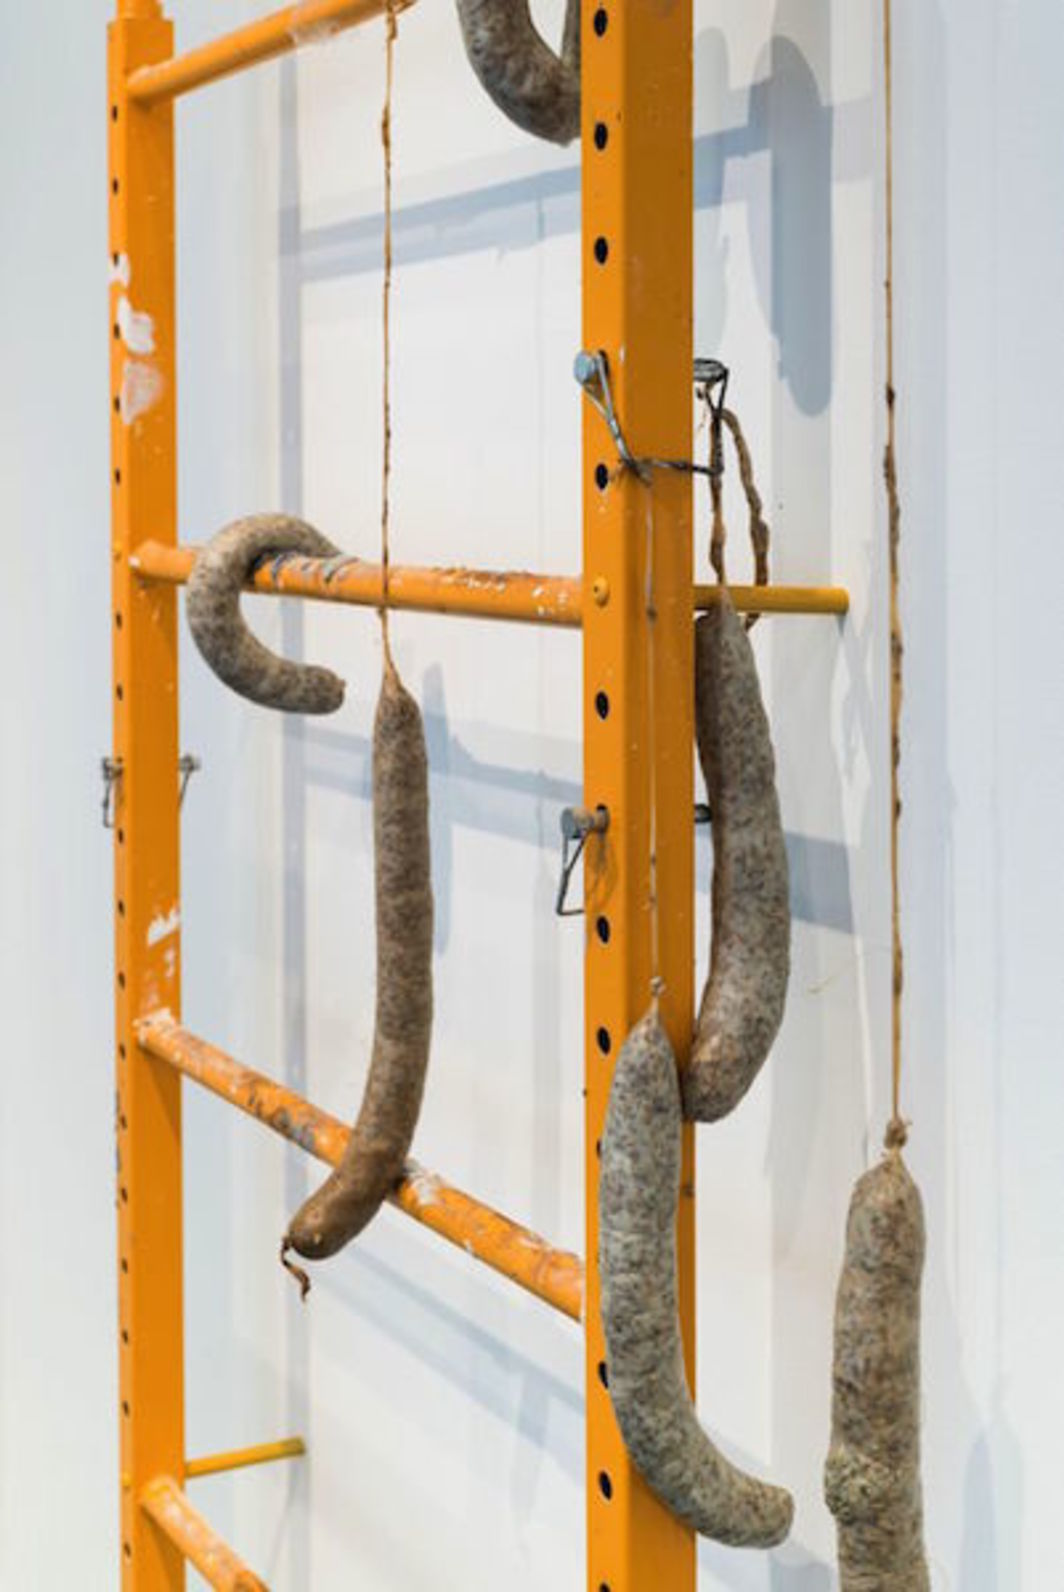 "Derek Franklin, Hanging Around (Healing Sausages for Communal Gatherings) (detail), 2017, steel, clamps, sausage casing, fennel, lard, 92 x 44 x 6""."